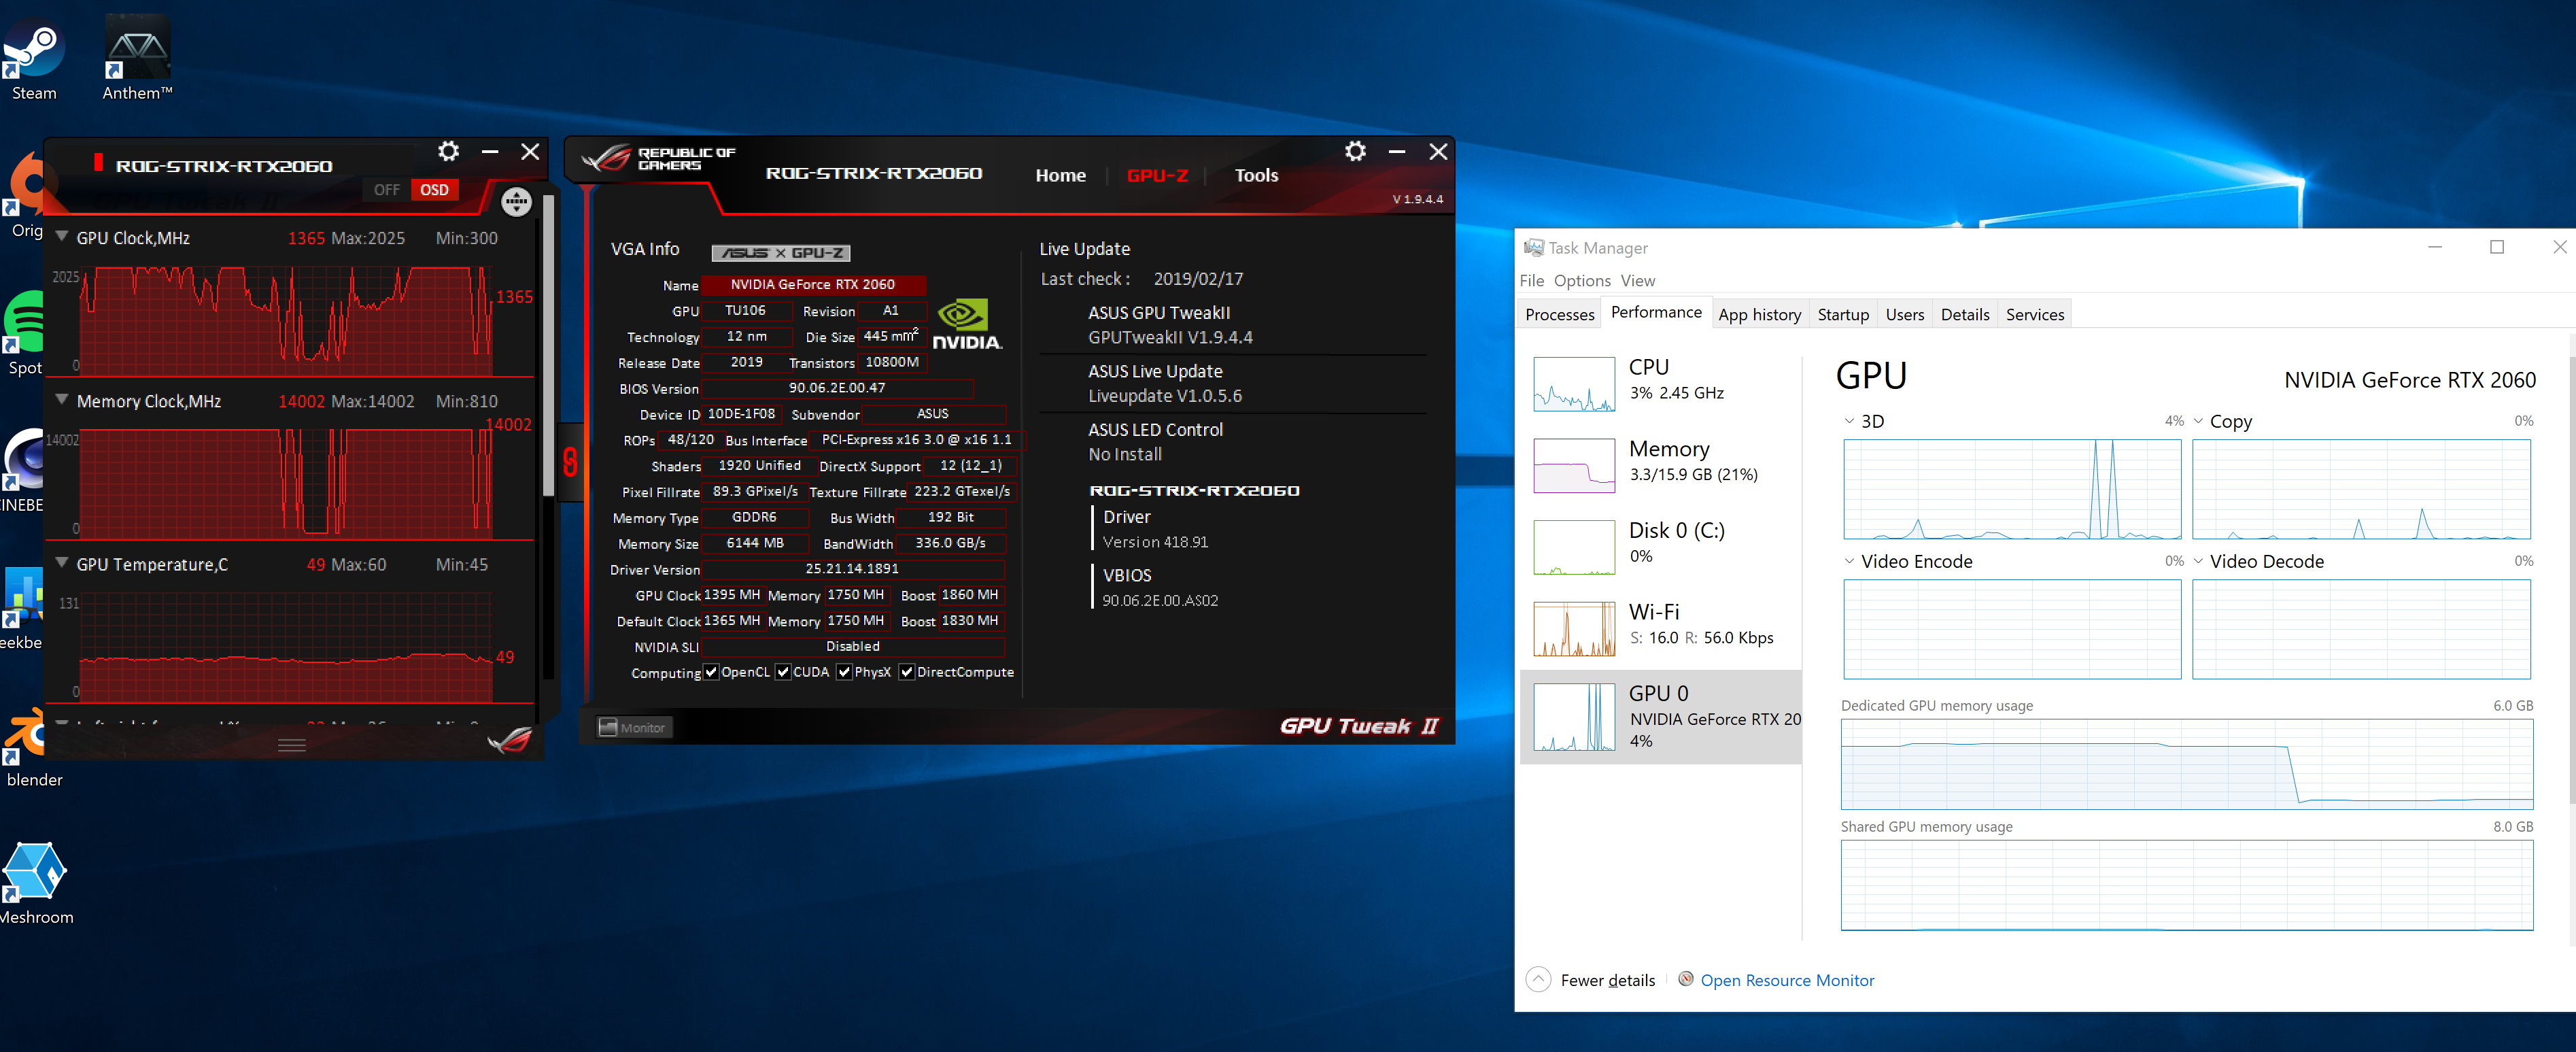 Task Manager not reporting correct GPU usage? - Graphics Cards